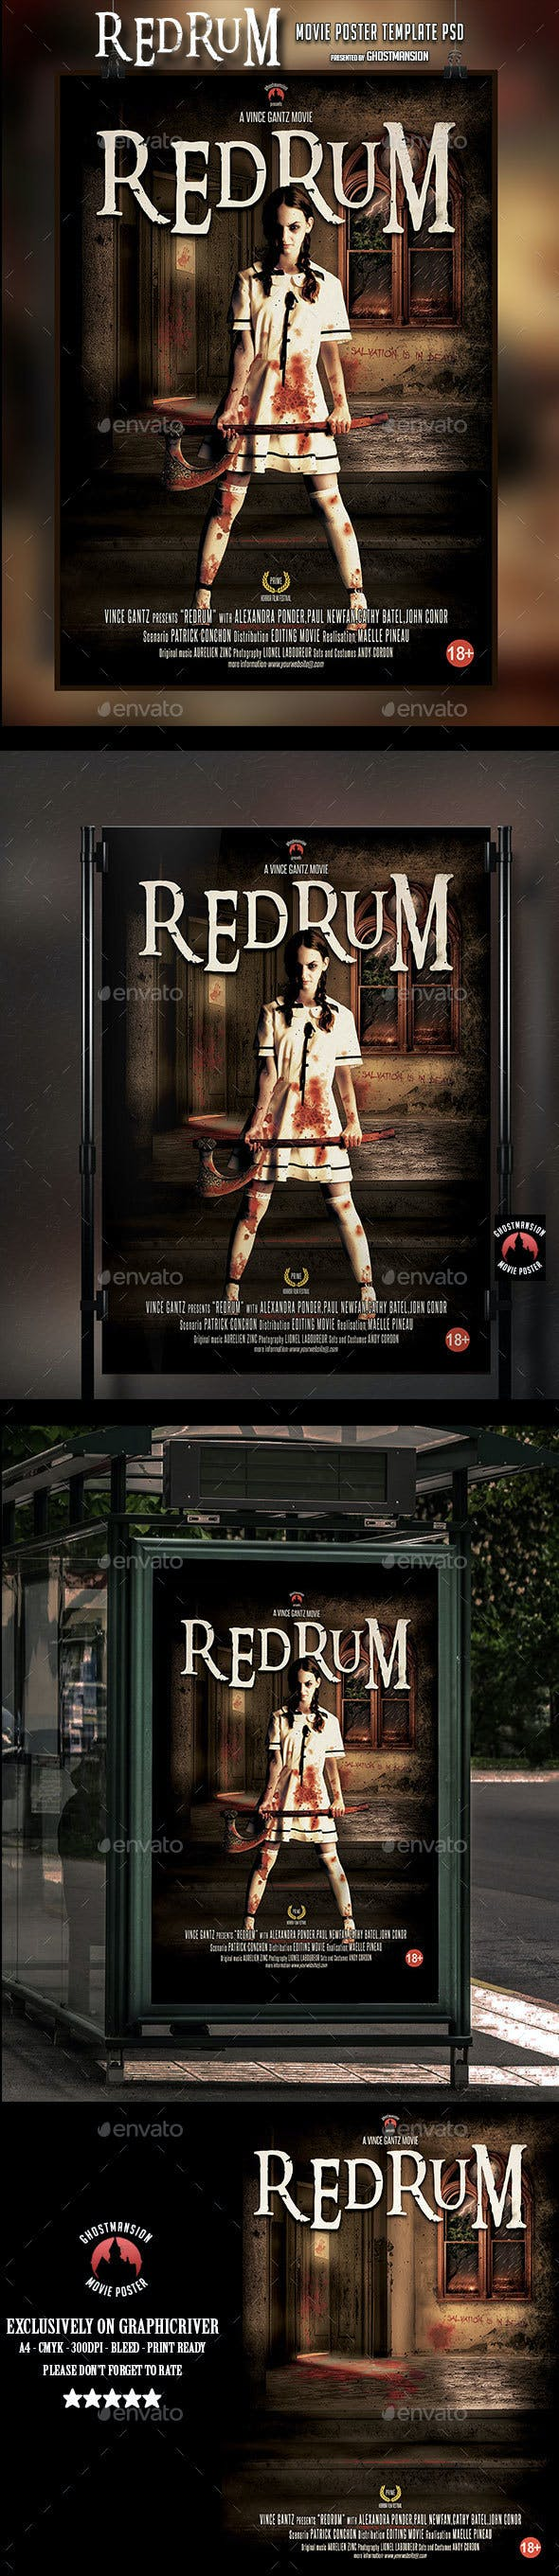 redrum movie poster template psd by ghostmansion graphicriver